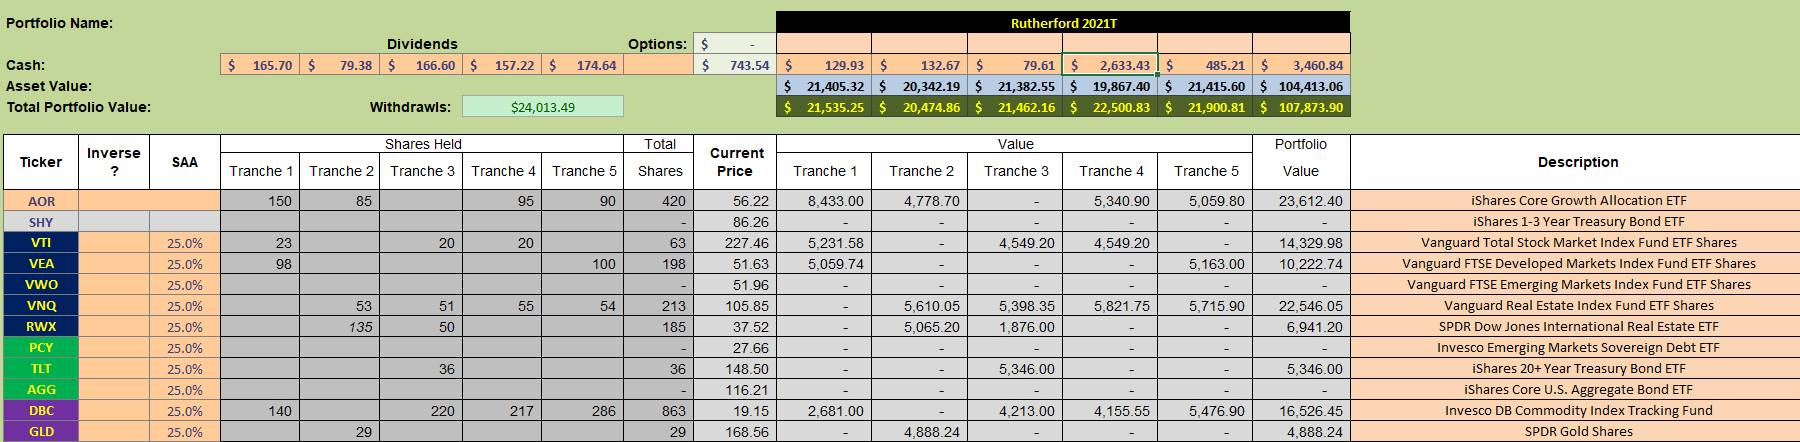 Rutherford Portfolio Review (Tranche 4) – 23 July 2021 4